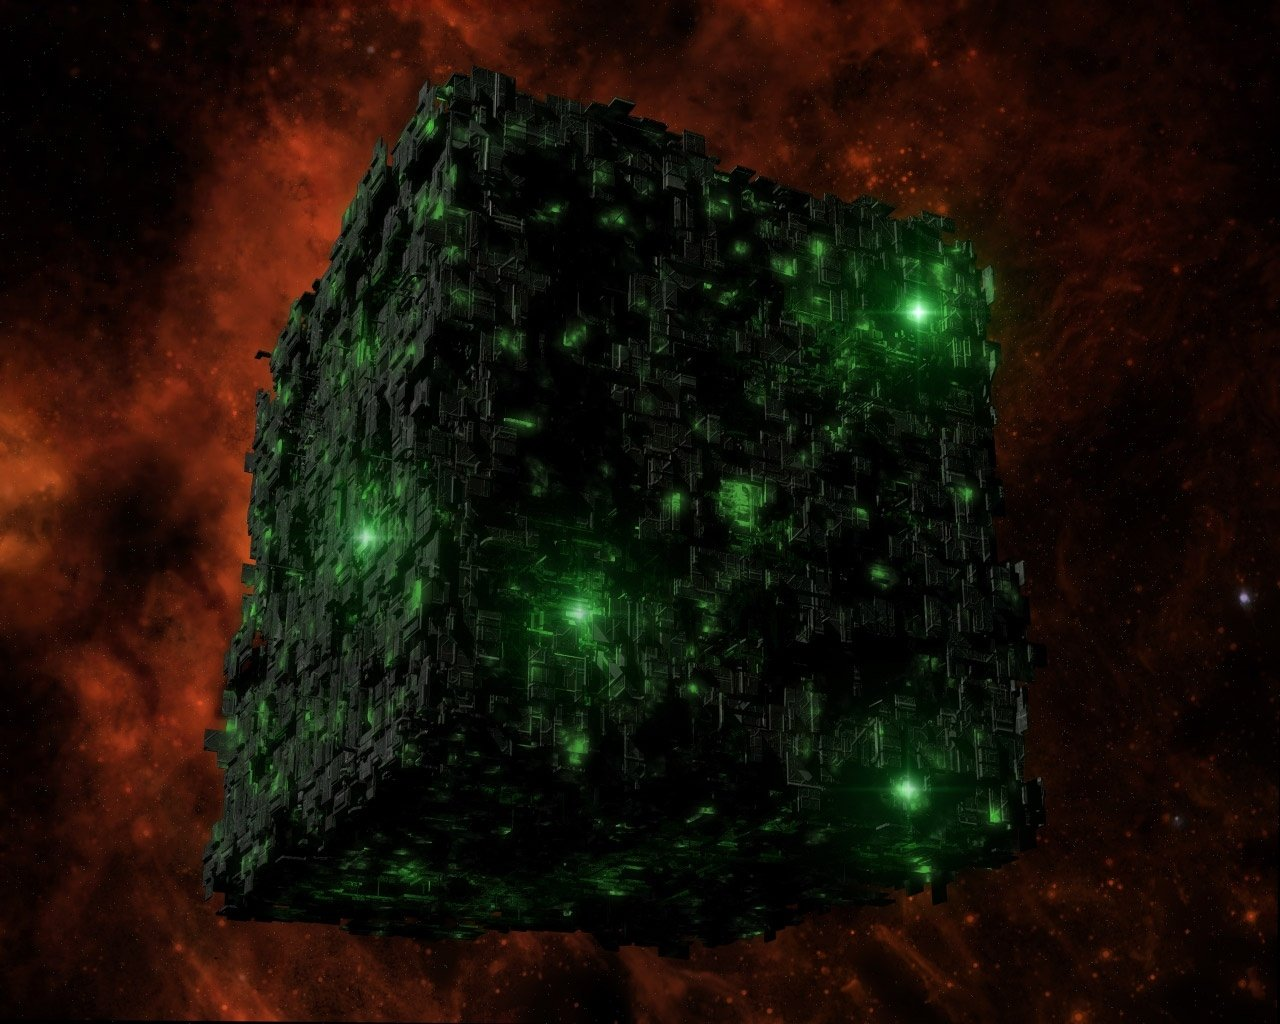 Borg Cube Wallpaper and Background Image 1280x1024 ID126455 1280x1024